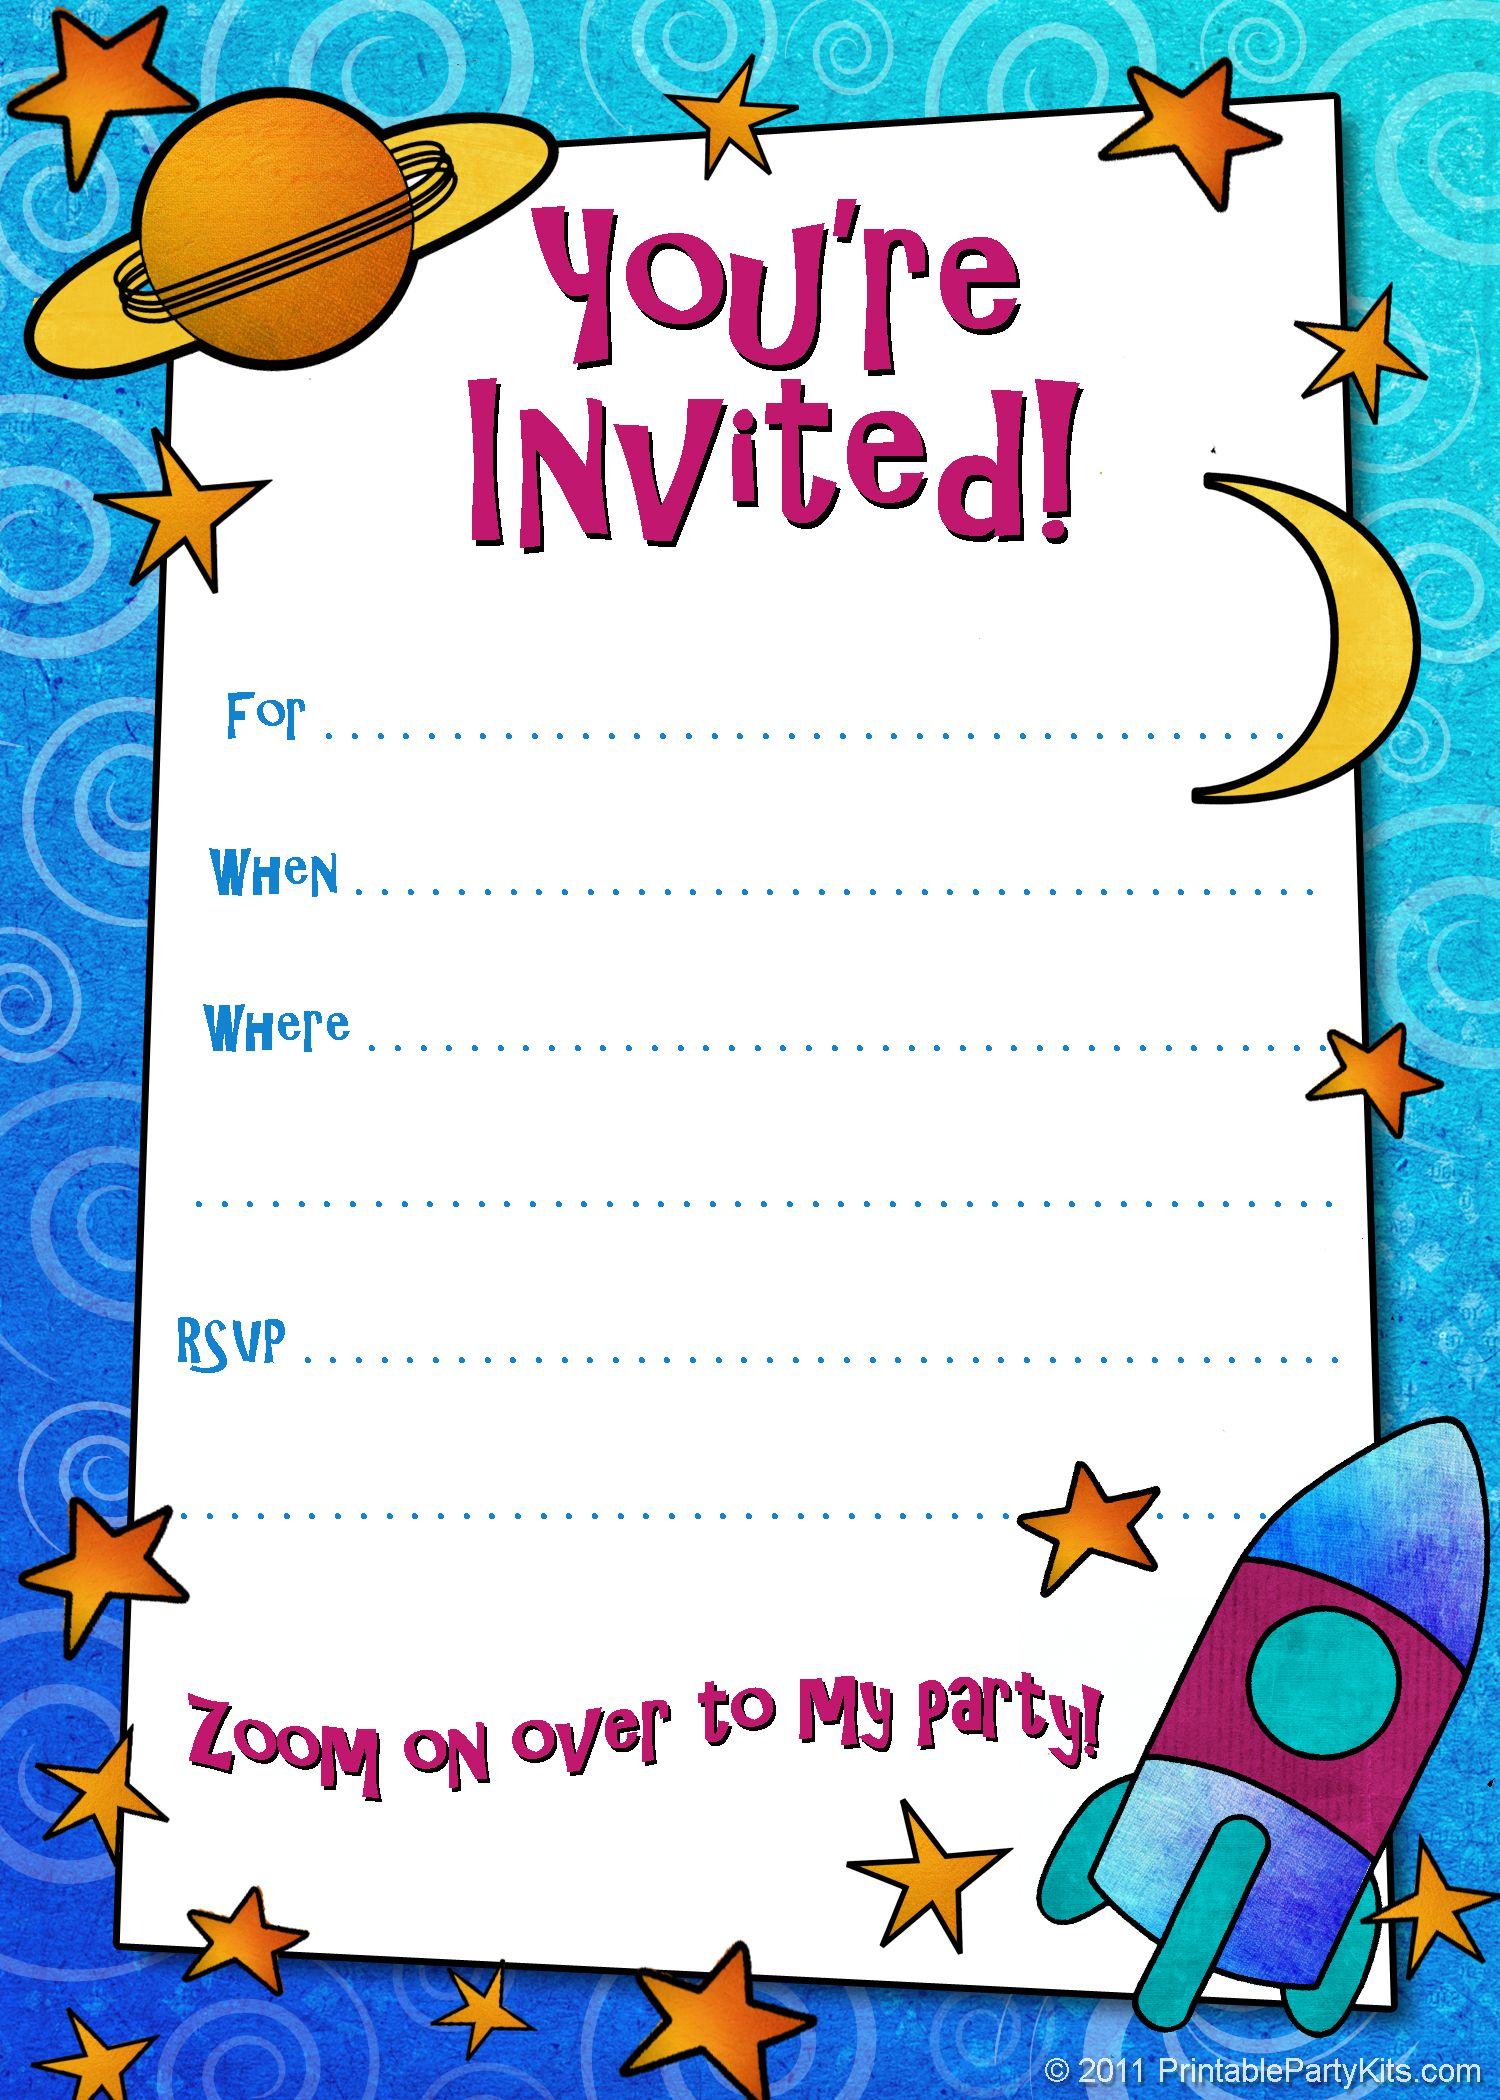 Kid birthday party invitation templates gidiyedformapolitica kid birthday party invitation templates stopboris Choice Image